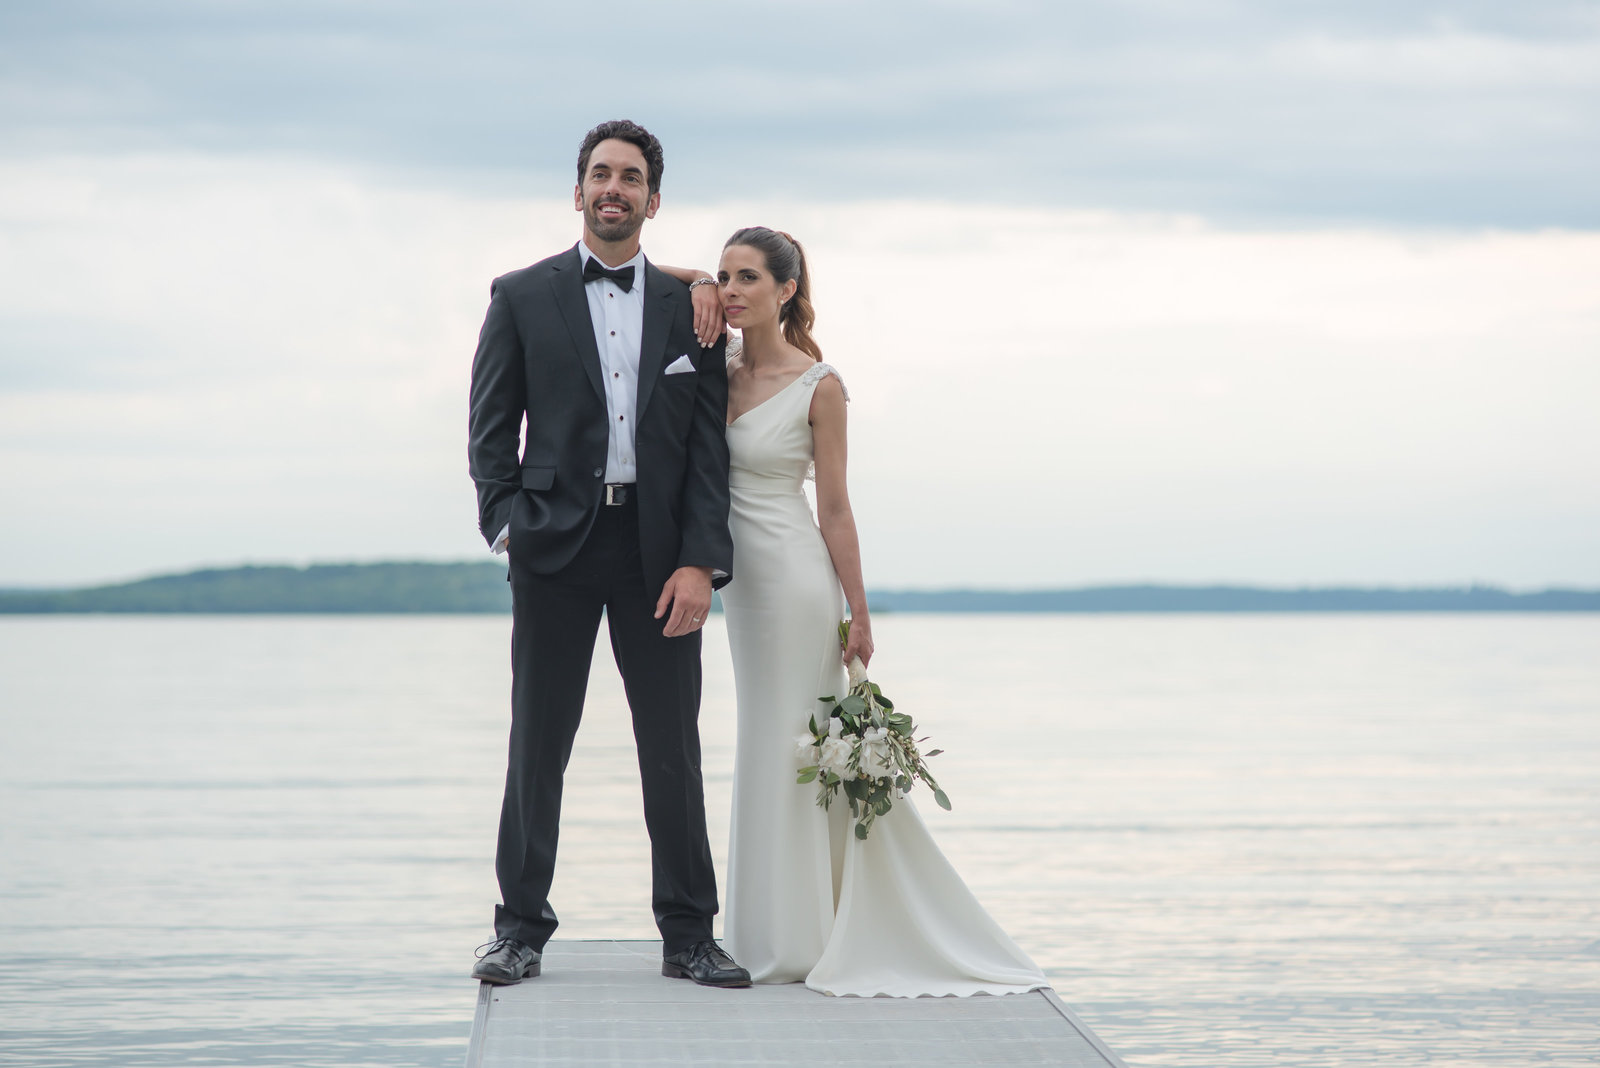 candid, beautiful weddings in Michigan